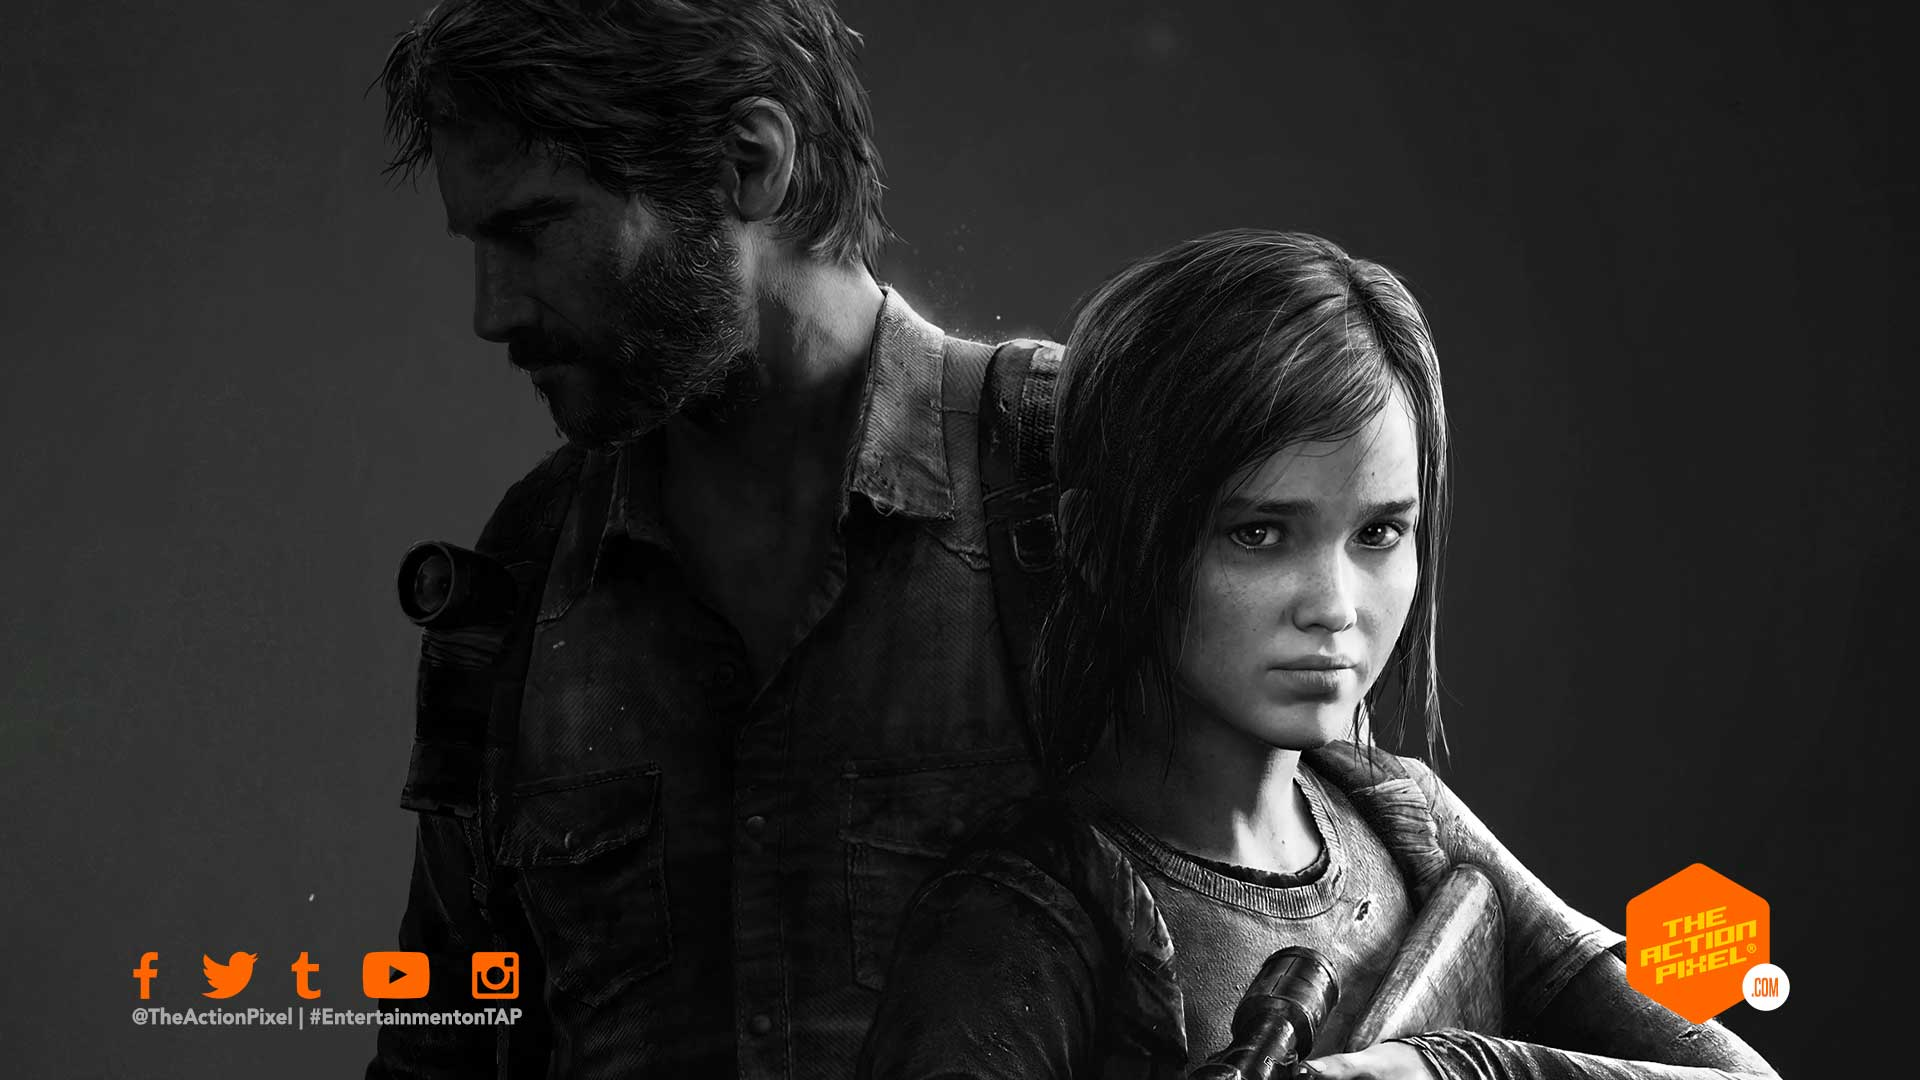 the last of us, hbo , hbo tv series, hbo the last of us, naughty dog, joel and ellie, ellie, joel miller,bella ramsey, game of thrones, pedro pascal , the mandalorian, the last of us casting, entertainment on tap, the action pixel, featured